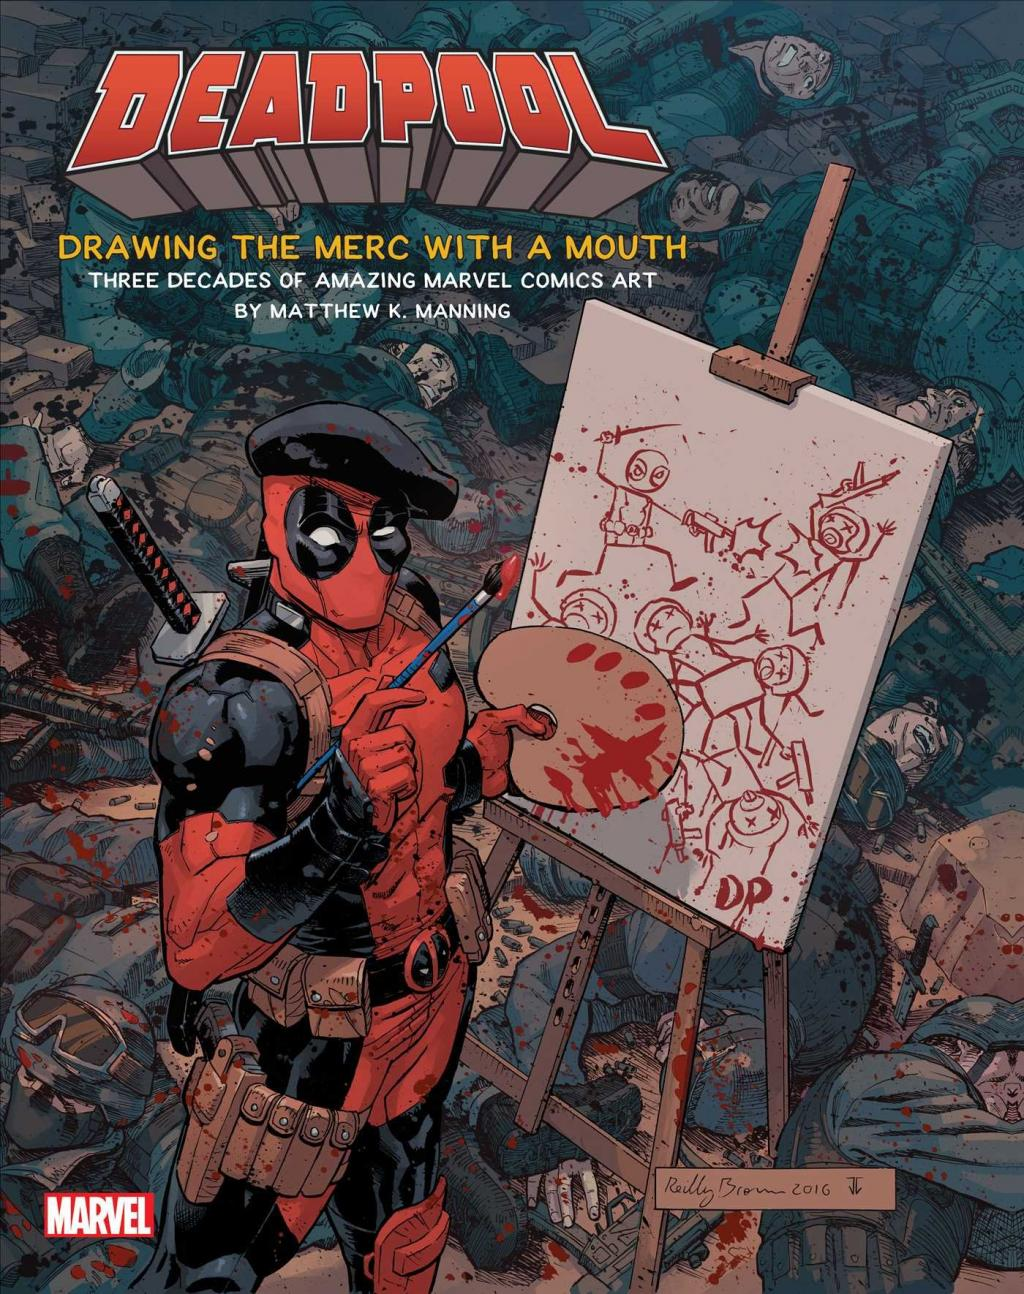 DEADPOOL - Art Book - Drawing the Merc with a Mouth (UK)